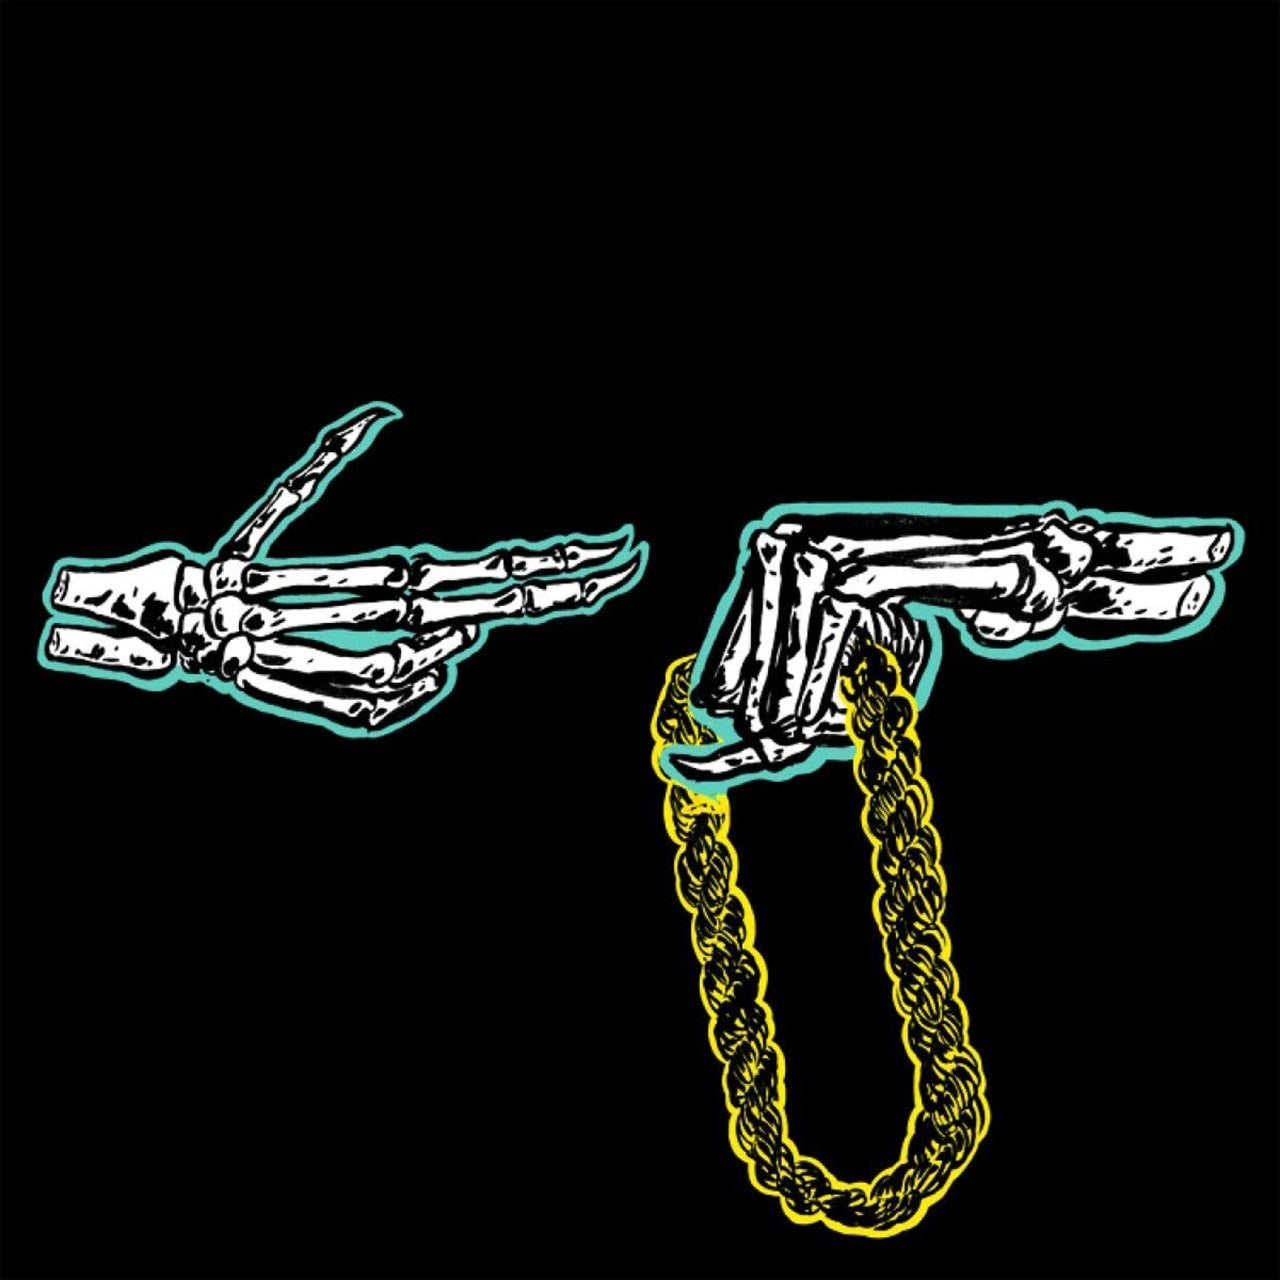 "Run The Jewels - Run The Jewels (Green Splattered Clear Vinyl - Includes Bonus 12"")"